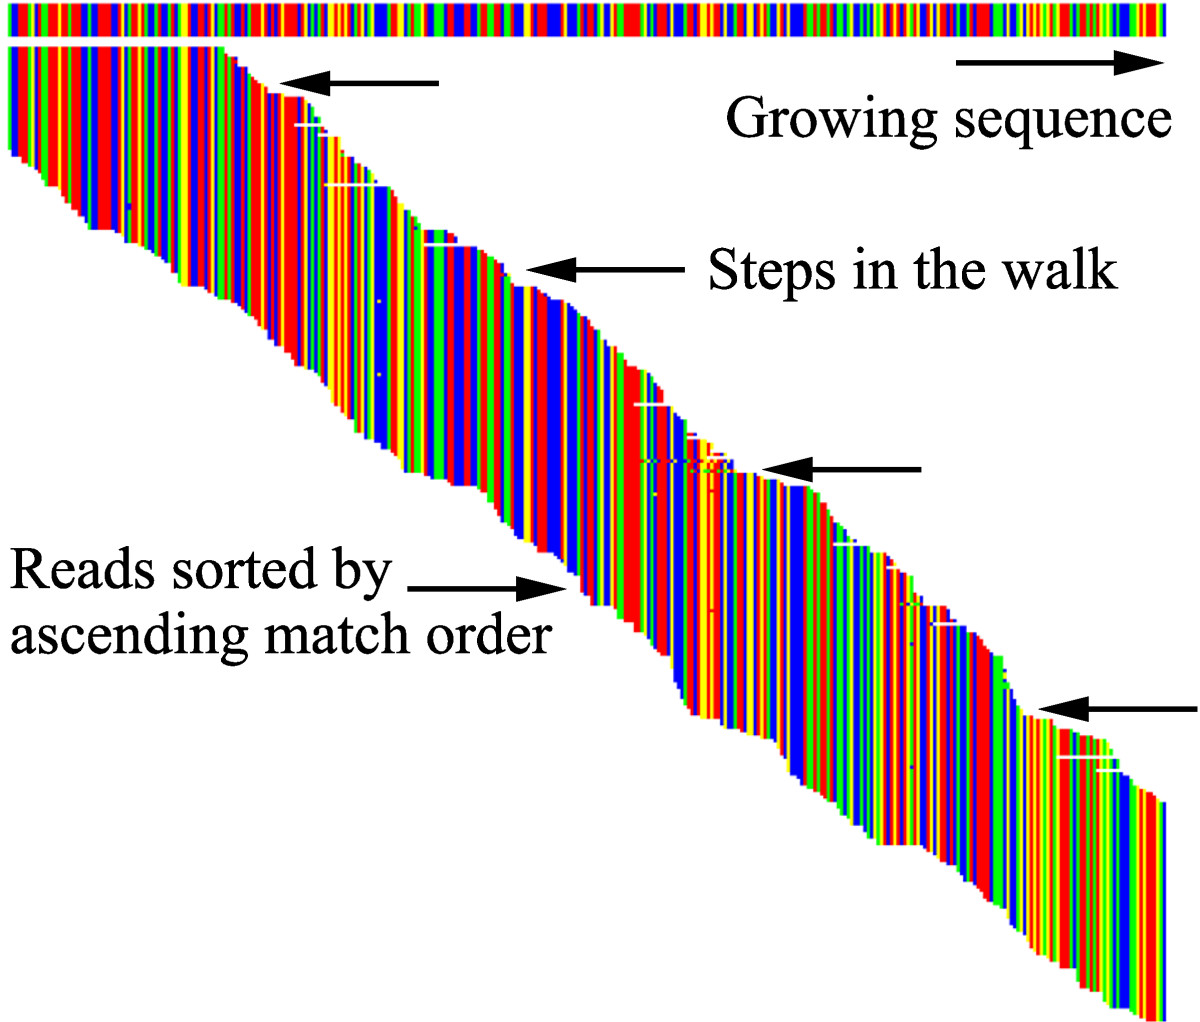 http://static-content.springer.com/image/art%3A10.1186%2F1756-0500-5-673/MediaObjects/13104_2012_Article_1965_Fig2_HTML.jpg